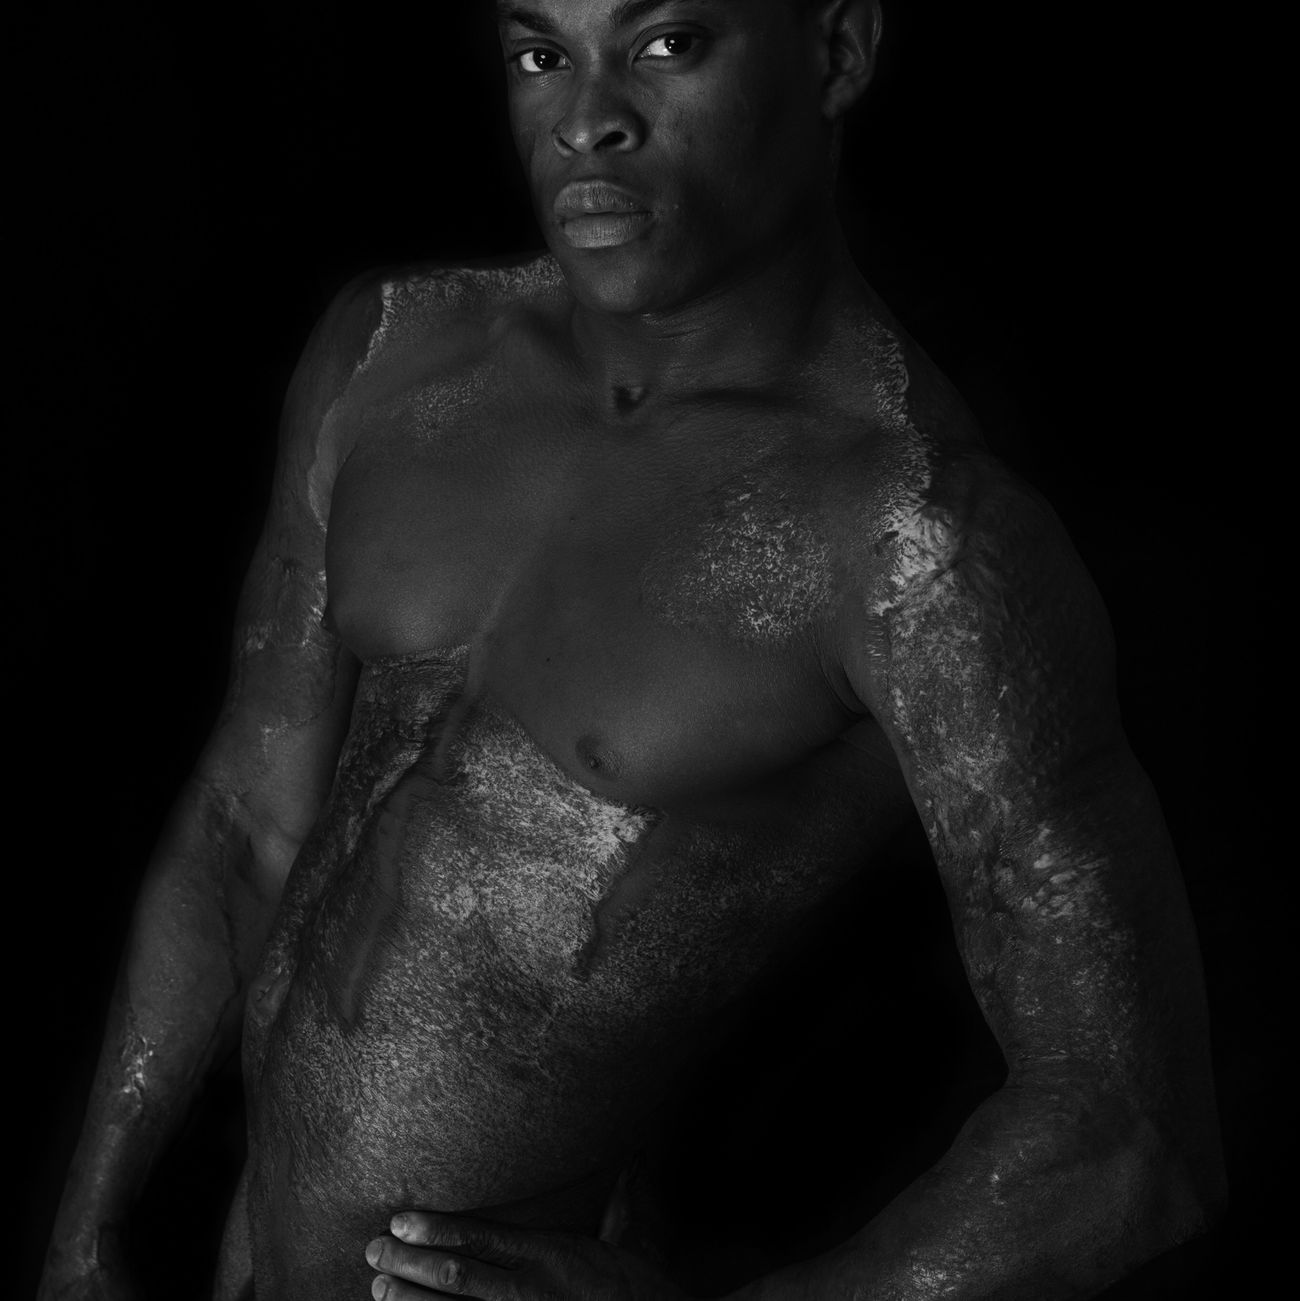 the power of embracing your difference BodyDiversity SOSea Portrait Scars